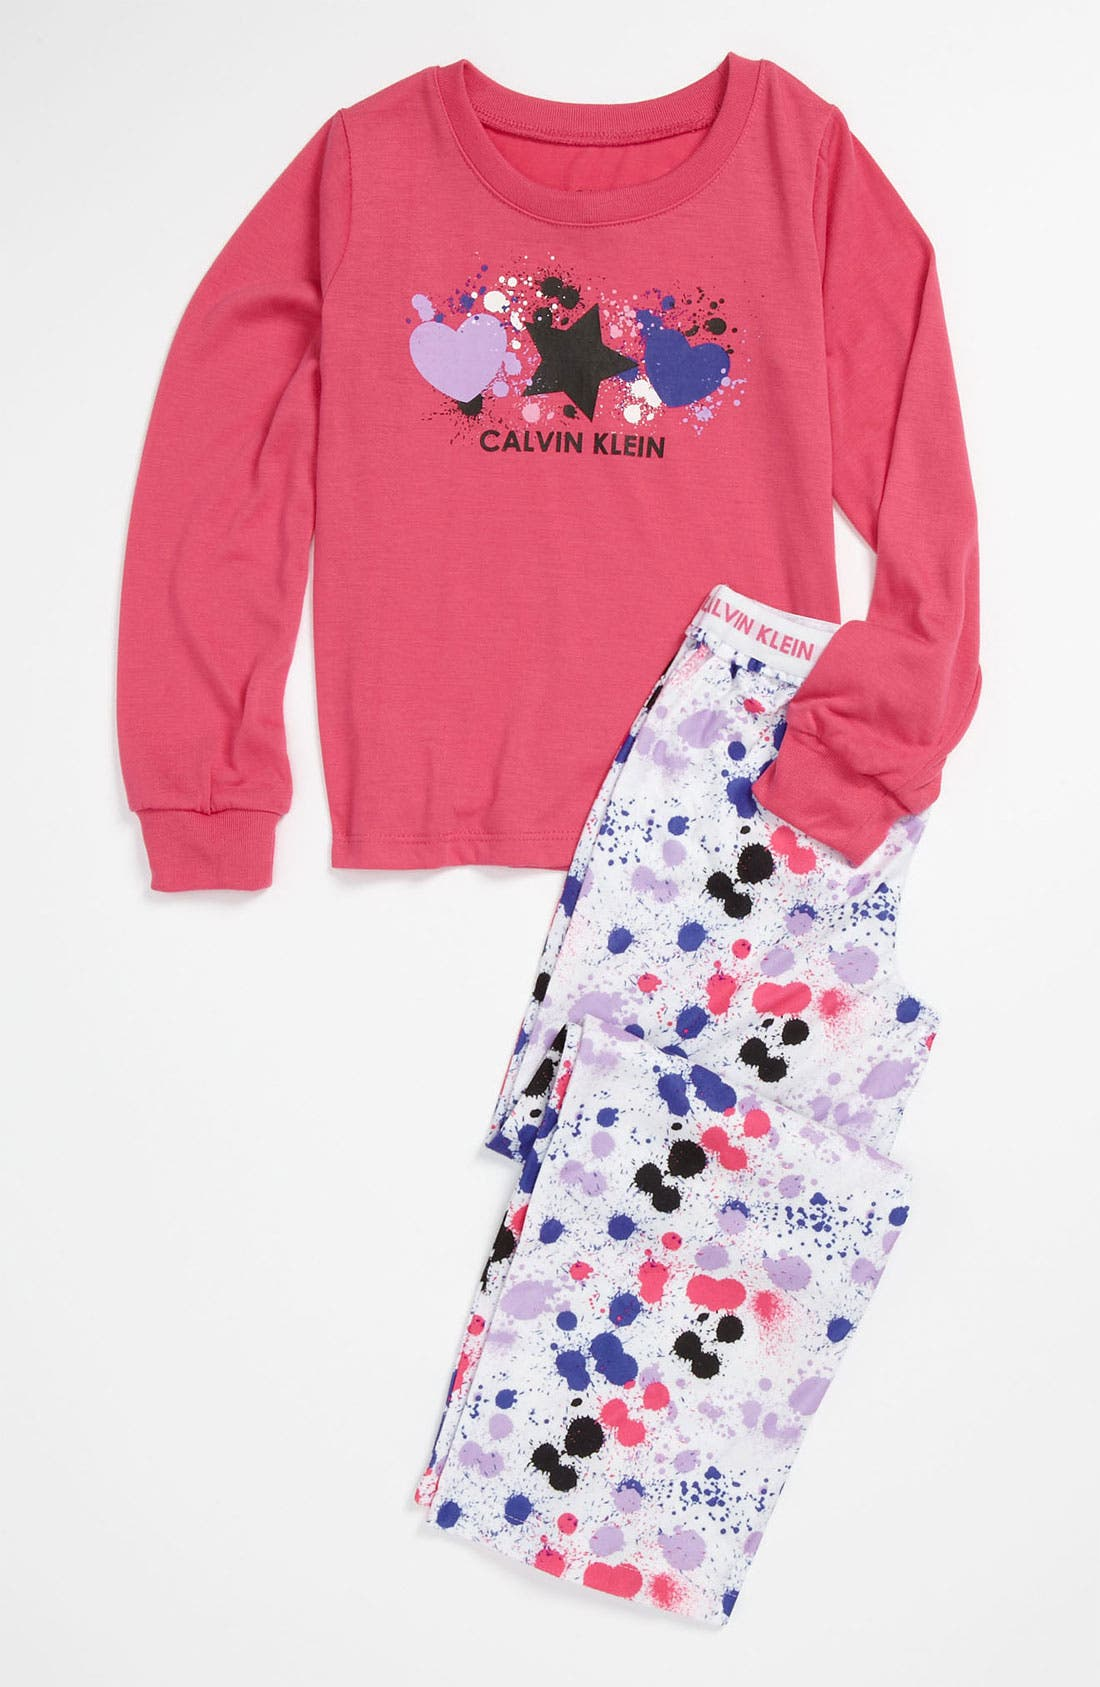 Main Image - Calvin Klein Knit Top & Pants Set (Little Girls & Big Girls)